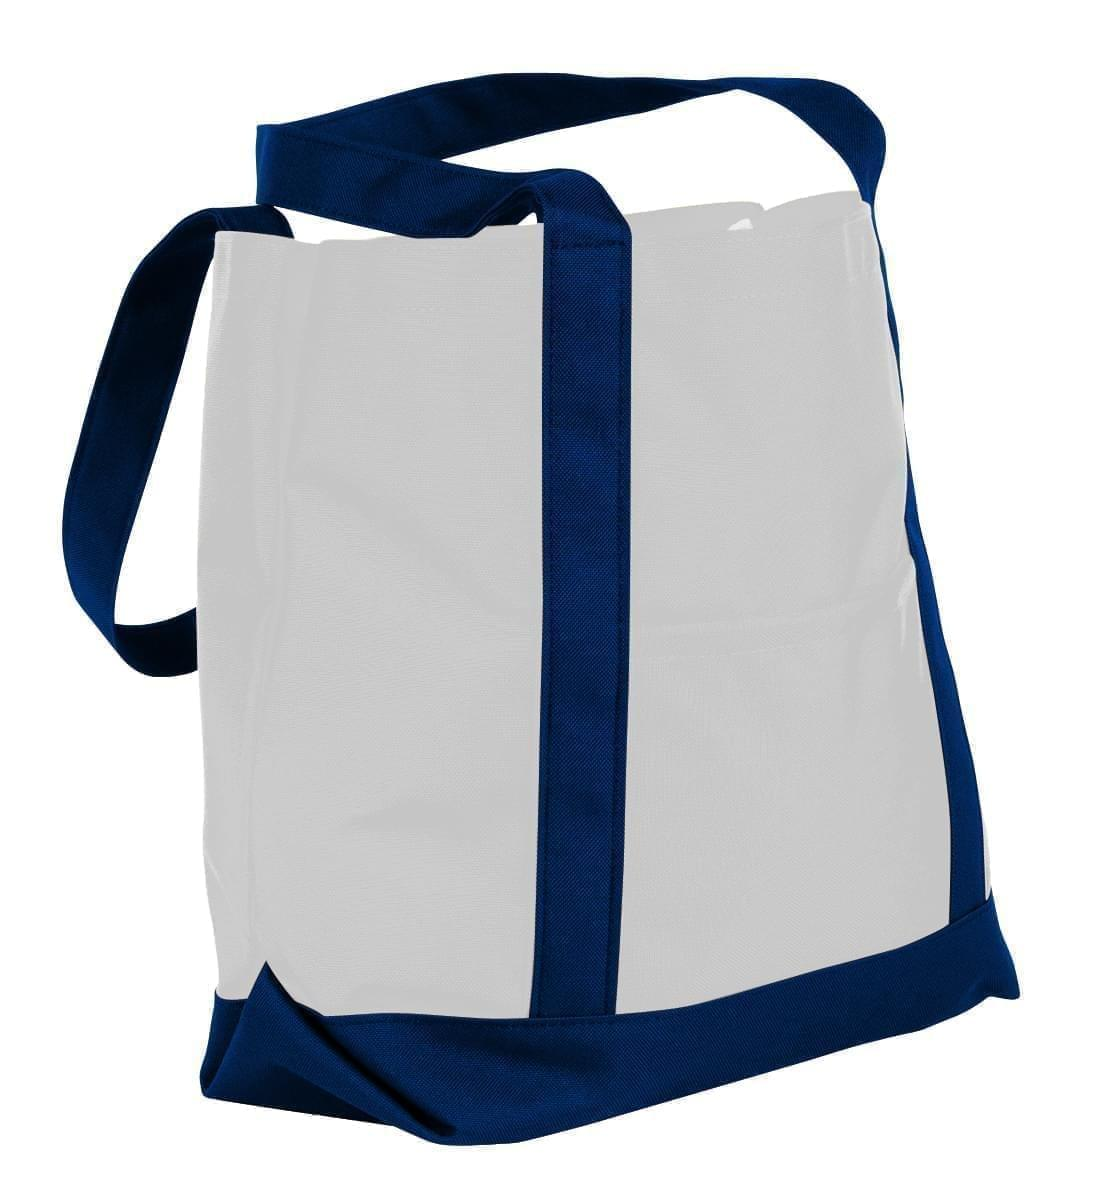 USA Made Nylon Poly Boat Tote Bags, White-Navy, XAACL1UA3I